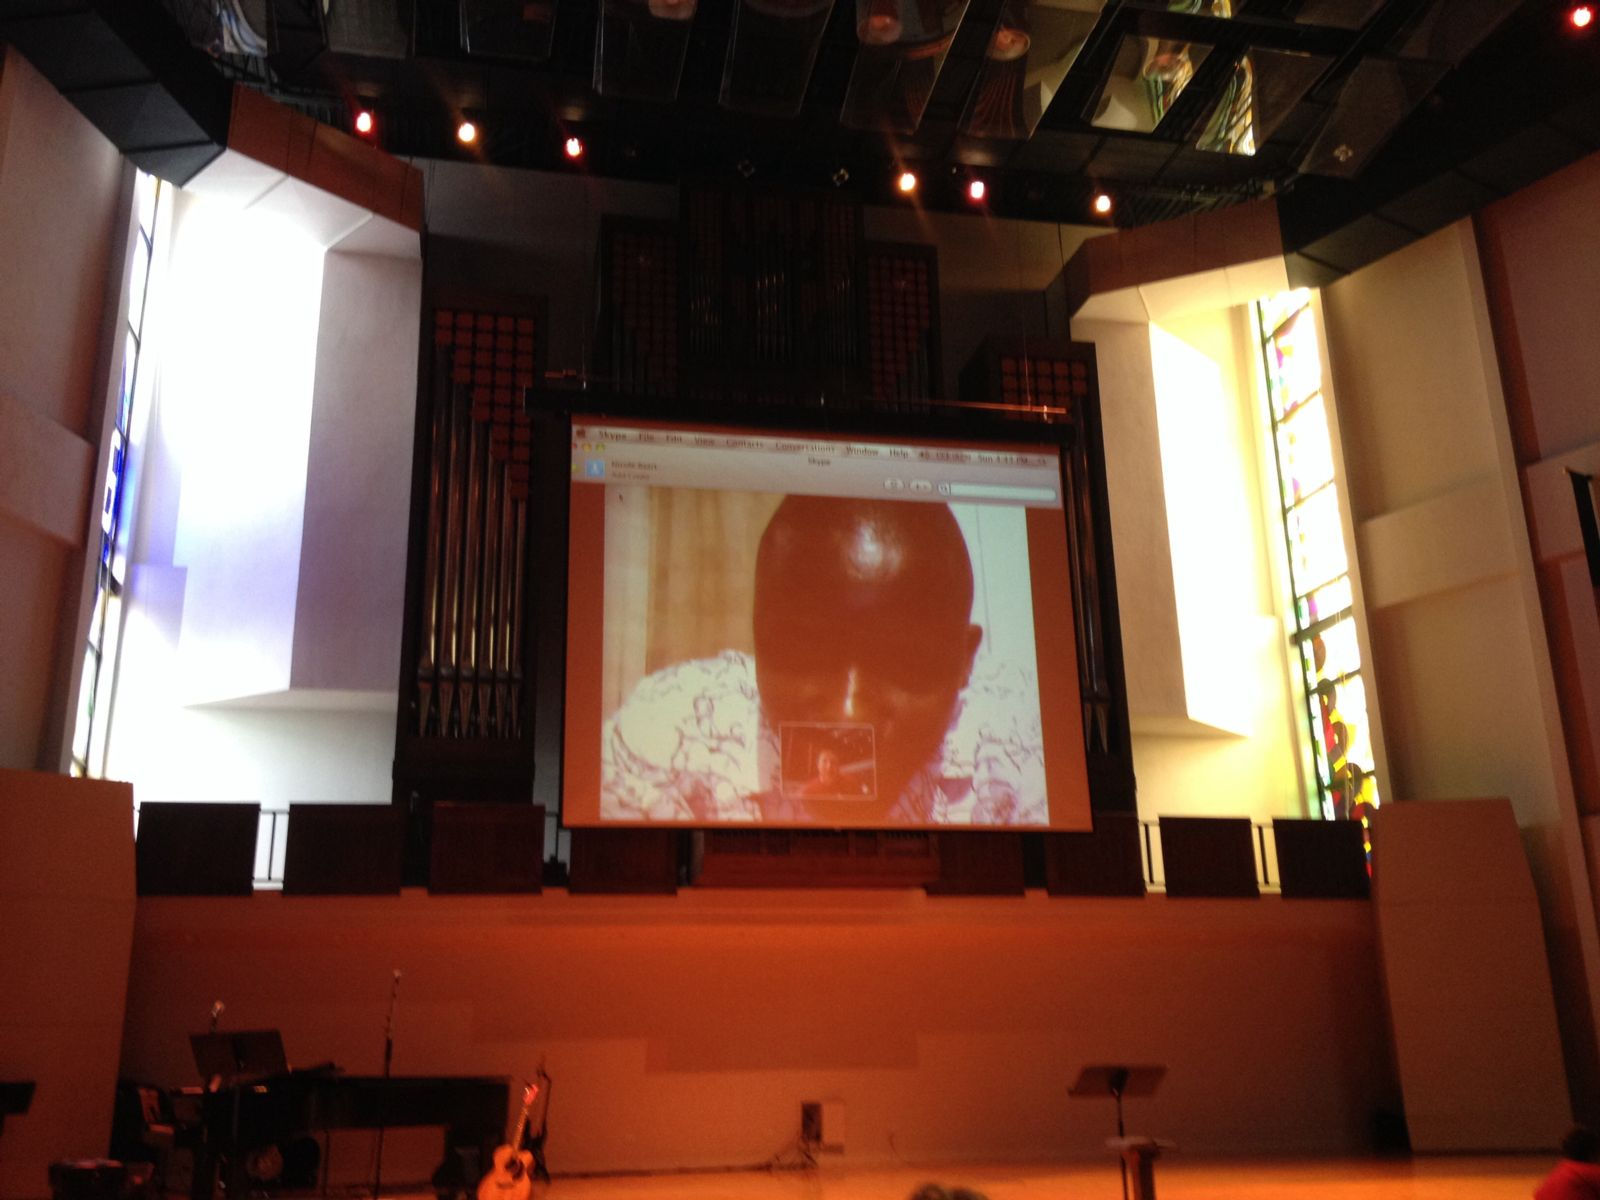 The call from Pastor Emmanuel. We were so glad to be able to speak with him even though he couldn't be here in person!